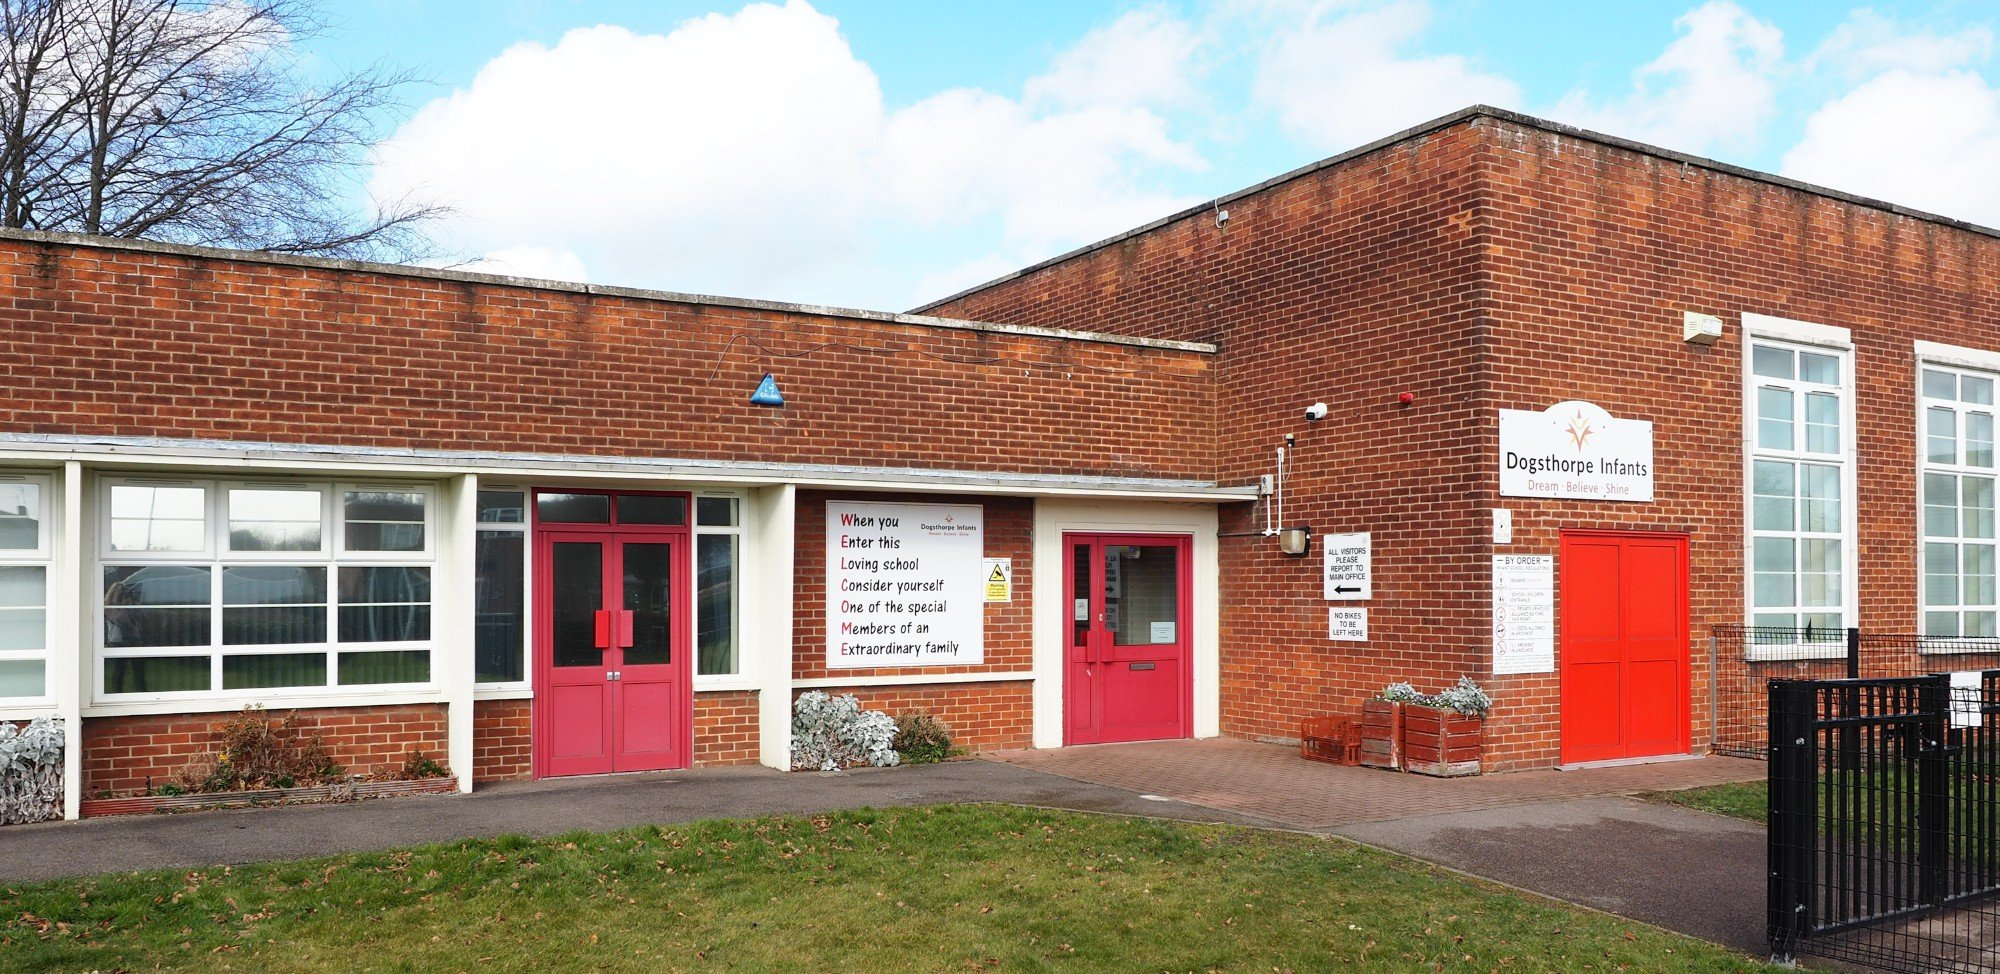 Case study for eAAward Finalist ReallySchool – Dogsthorpe Infant School